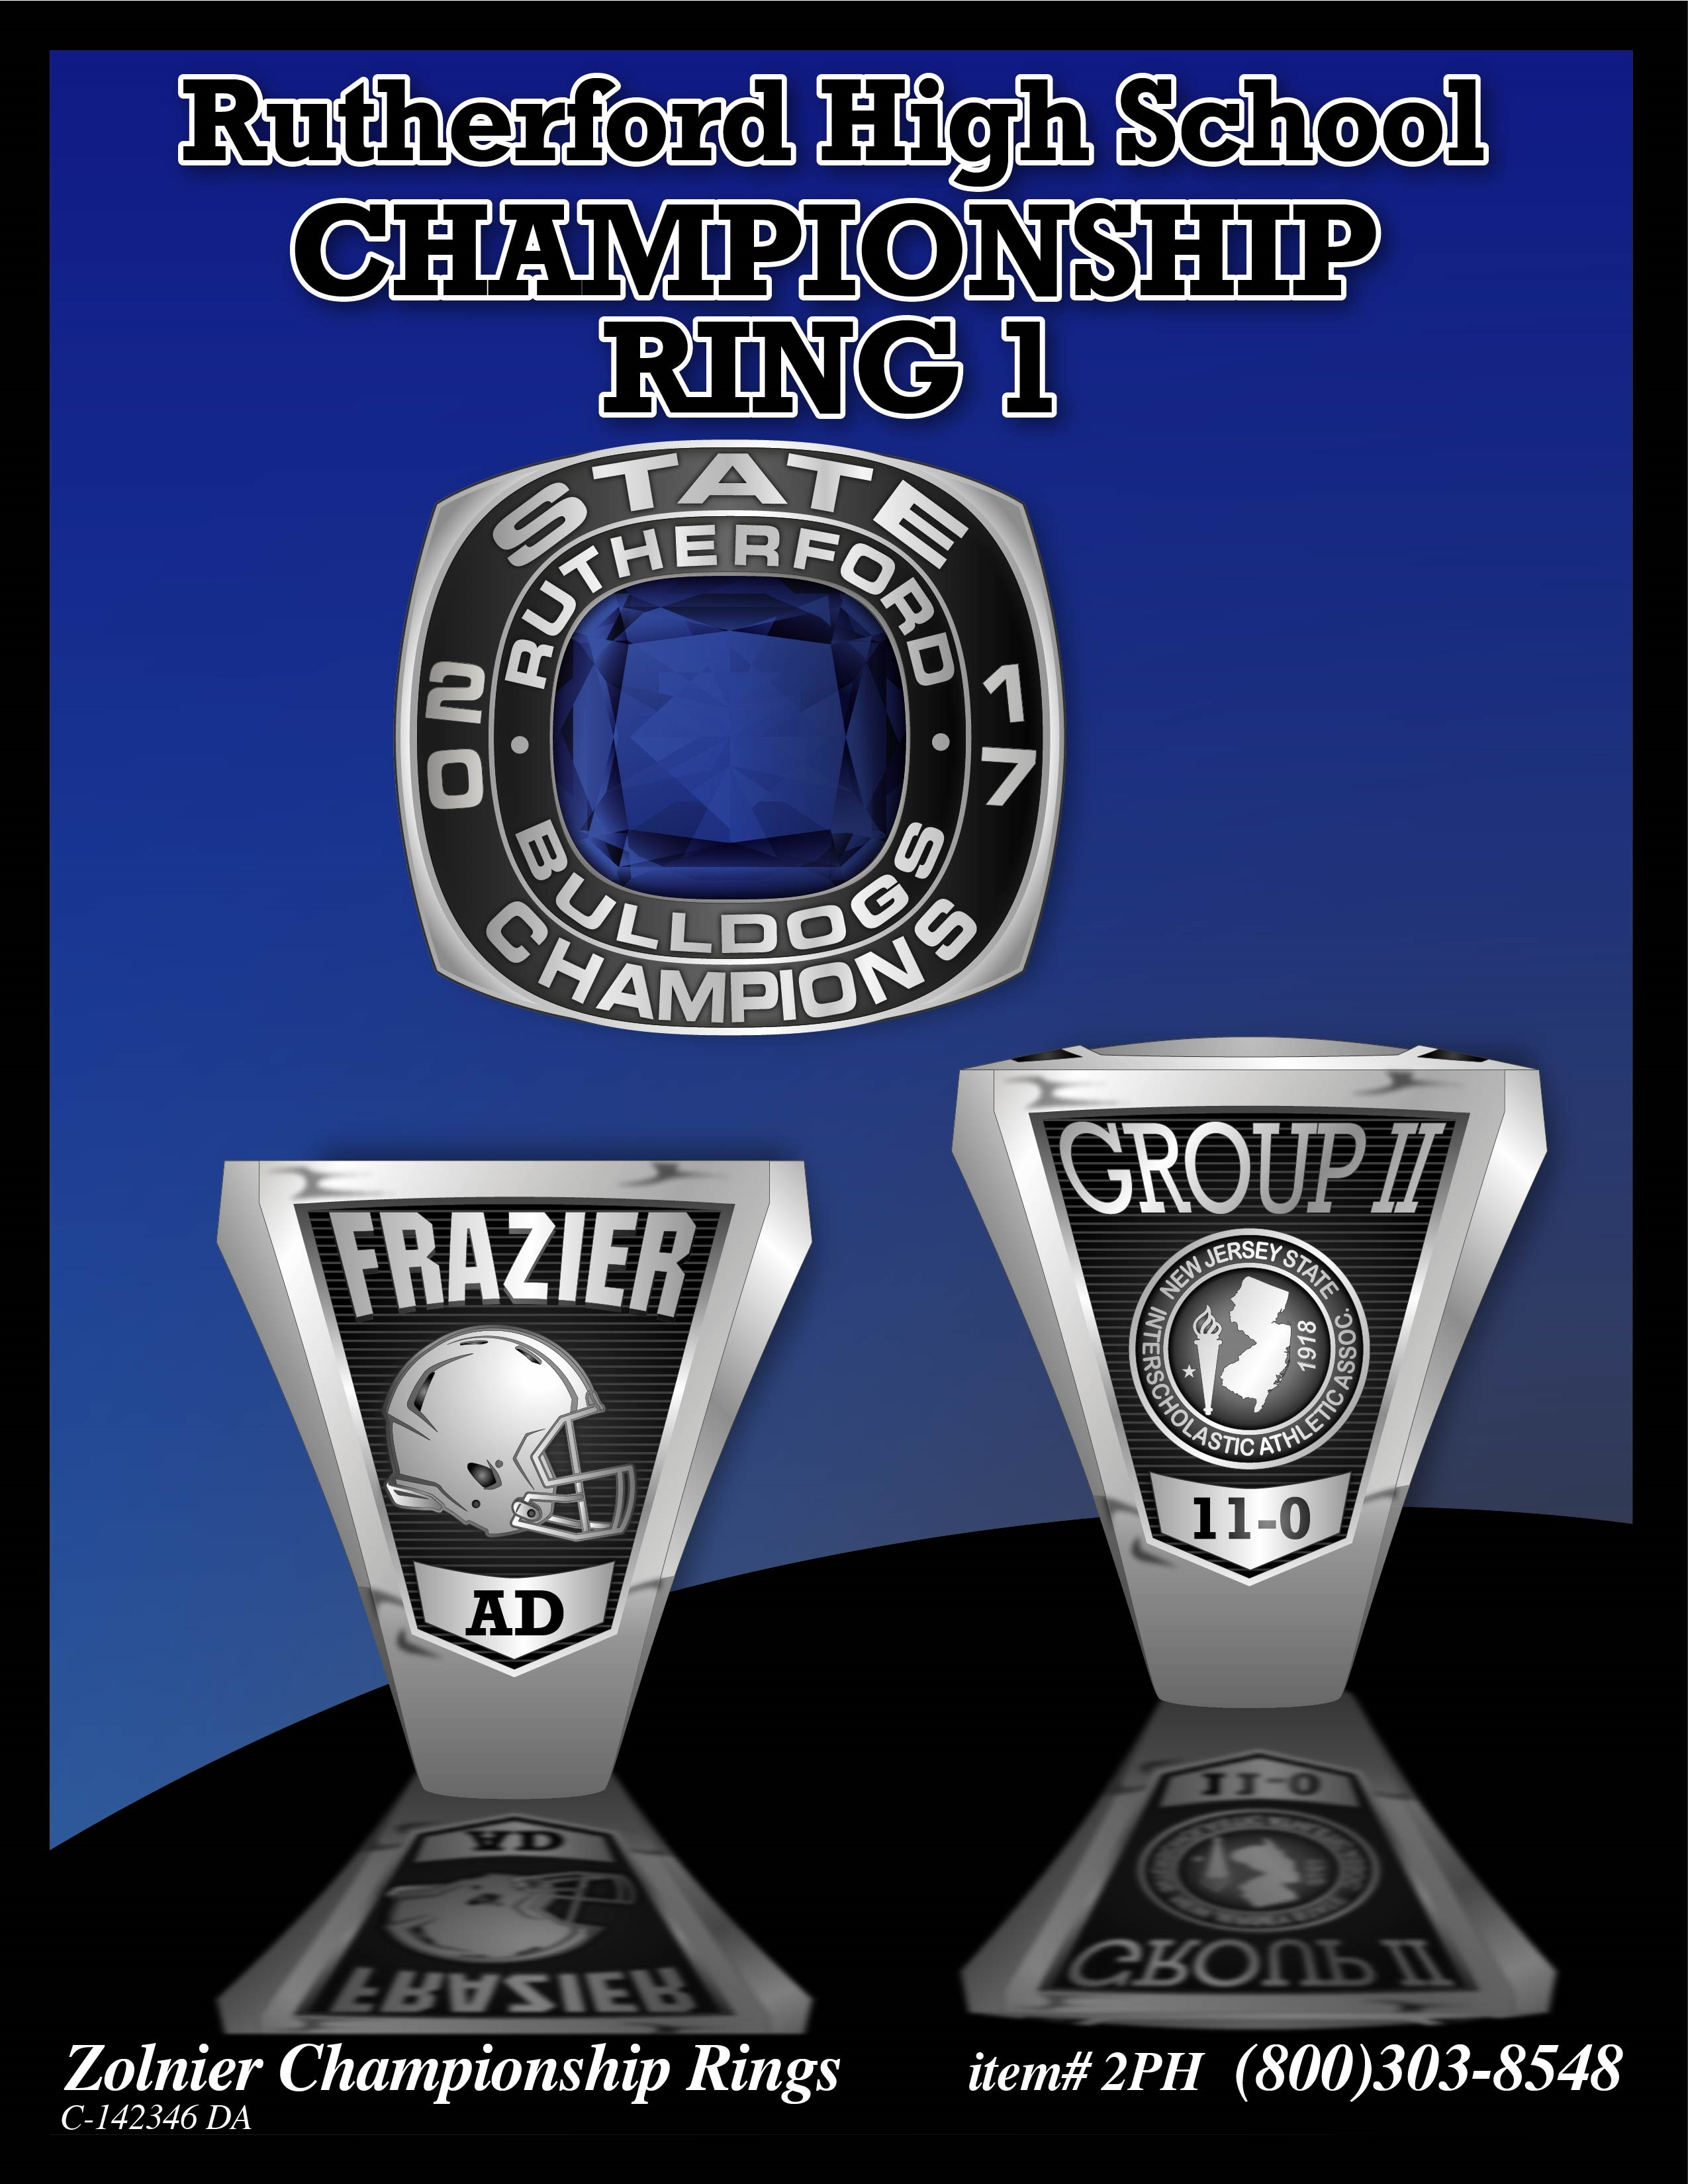 C-142346 Rutherford HS Champ Ring 1